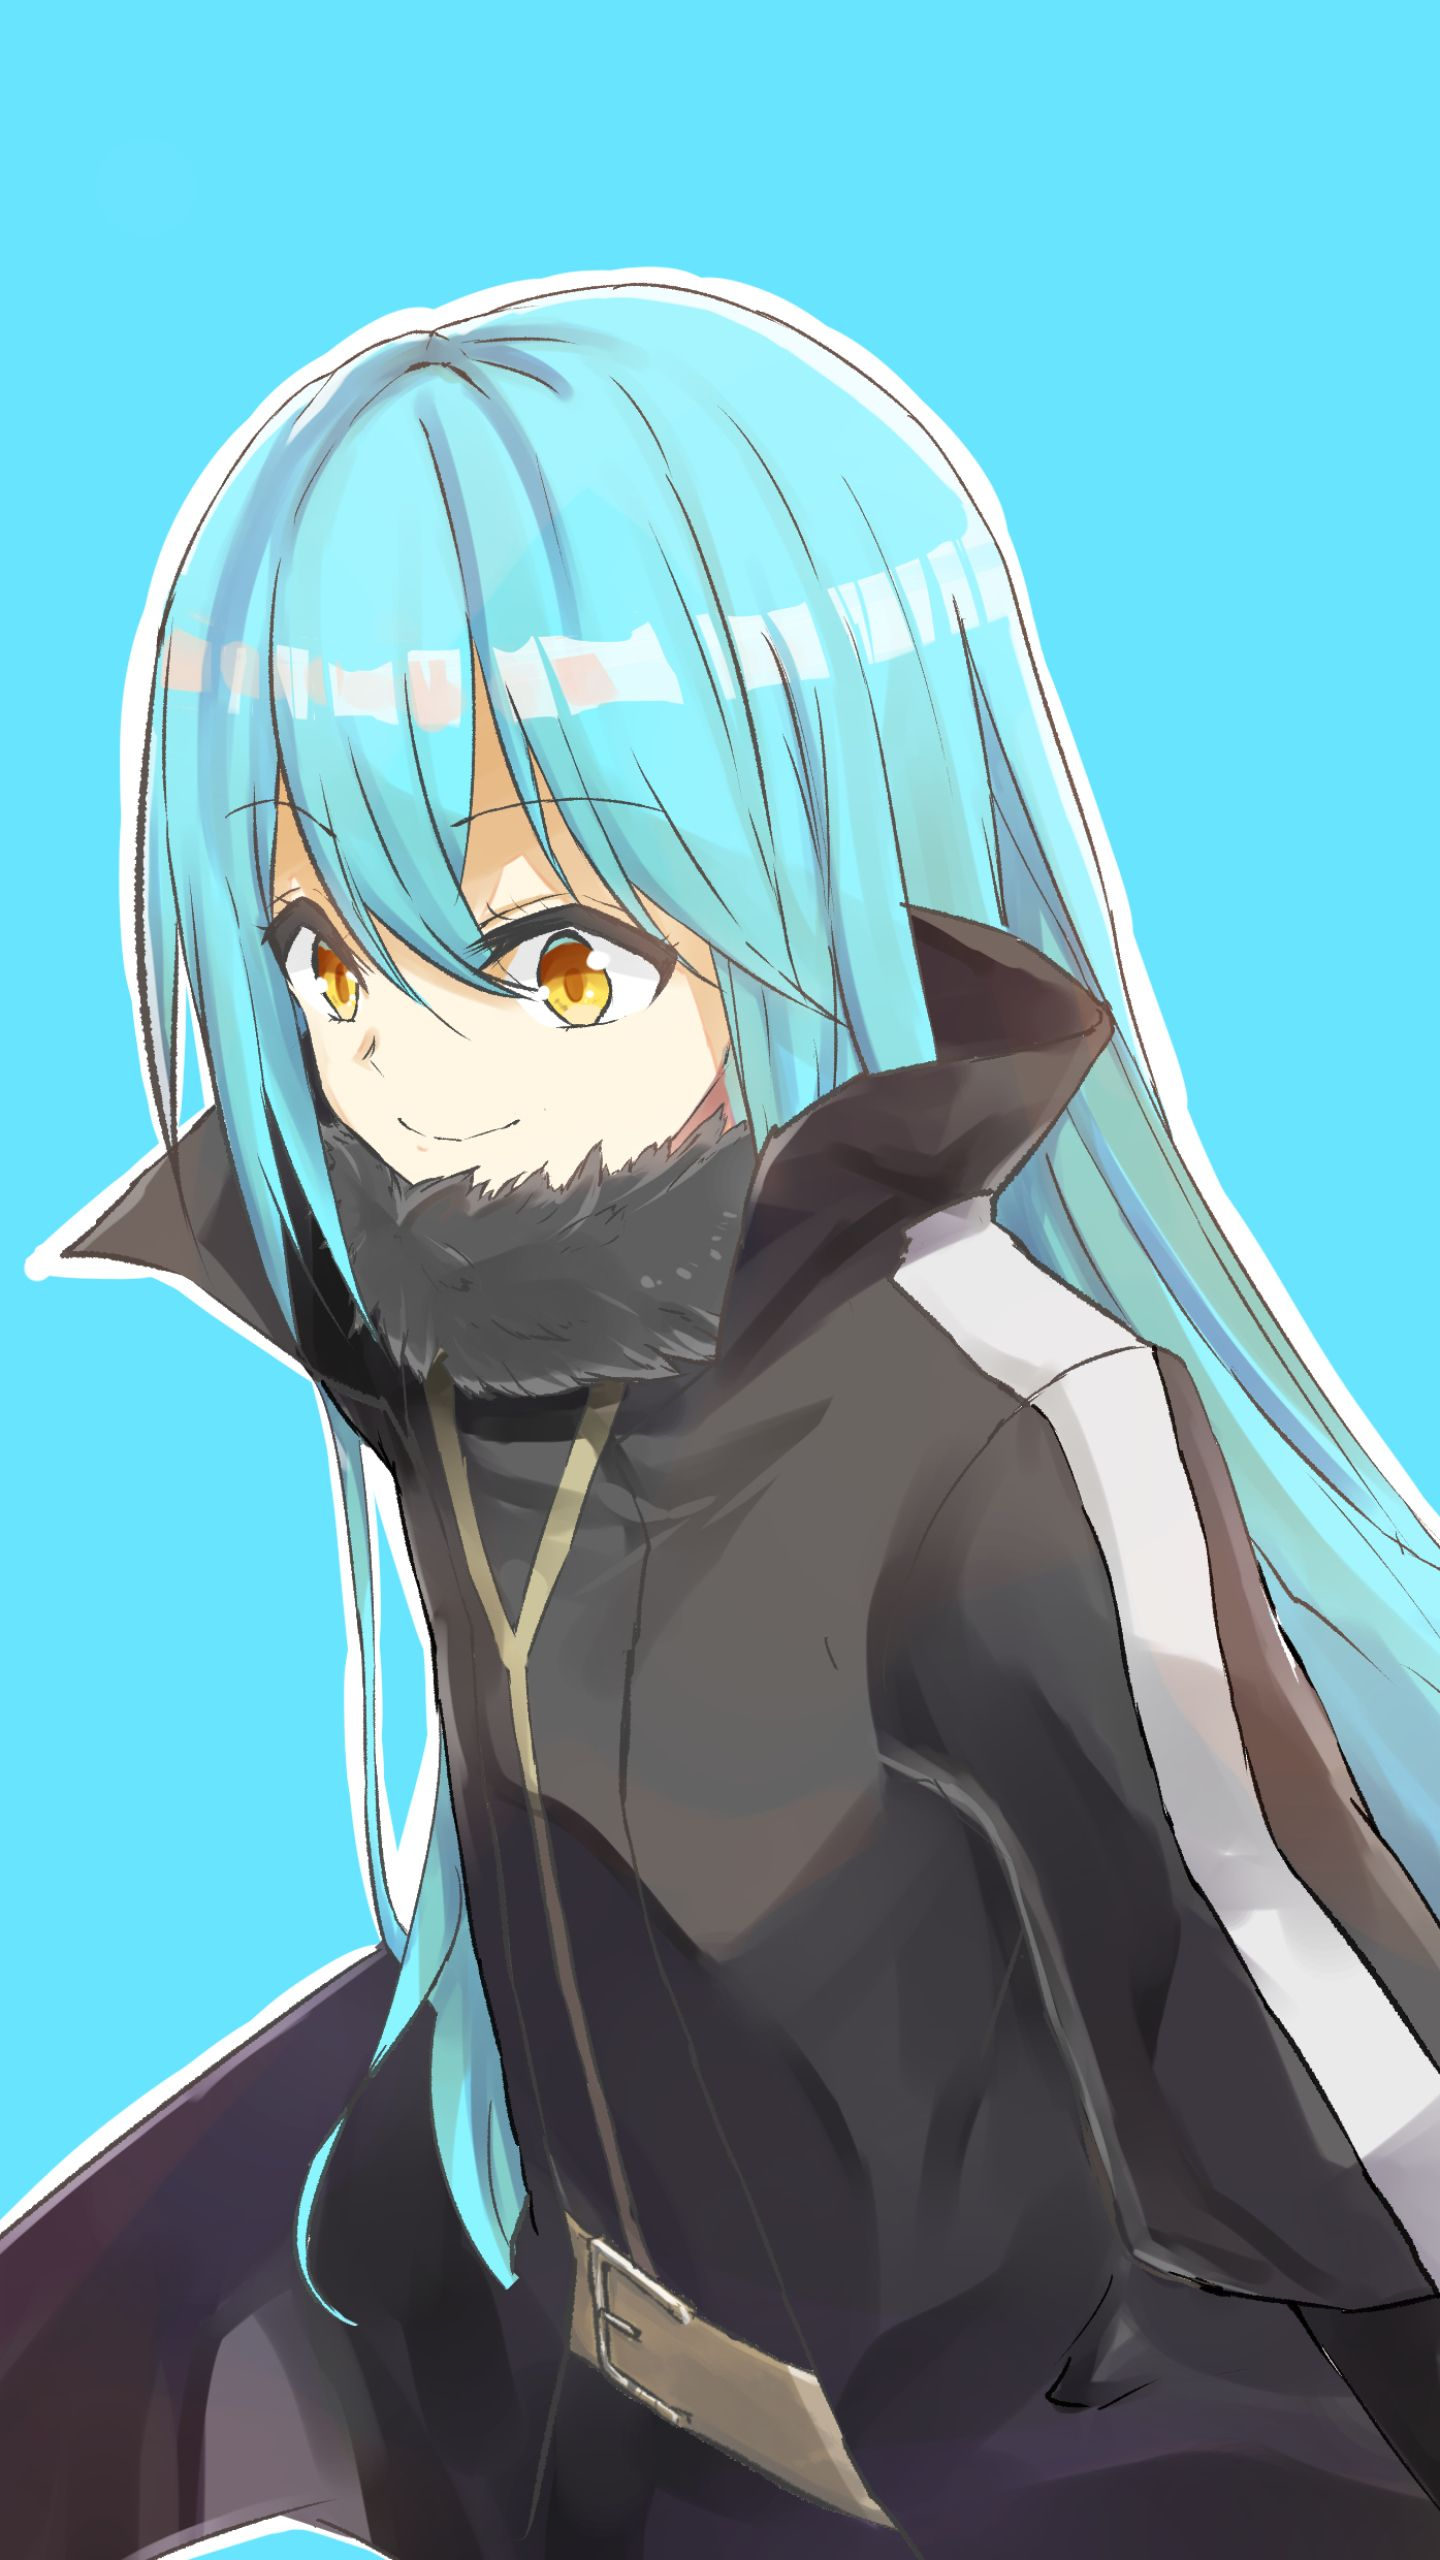 According to prevailing assumptions, male leaders tend to be analytical and hierarchical, while female leaders tend to be compassionate and collaborative. Rimuru Tempest | Anime, Slime wallpaper, Anime wallpaper